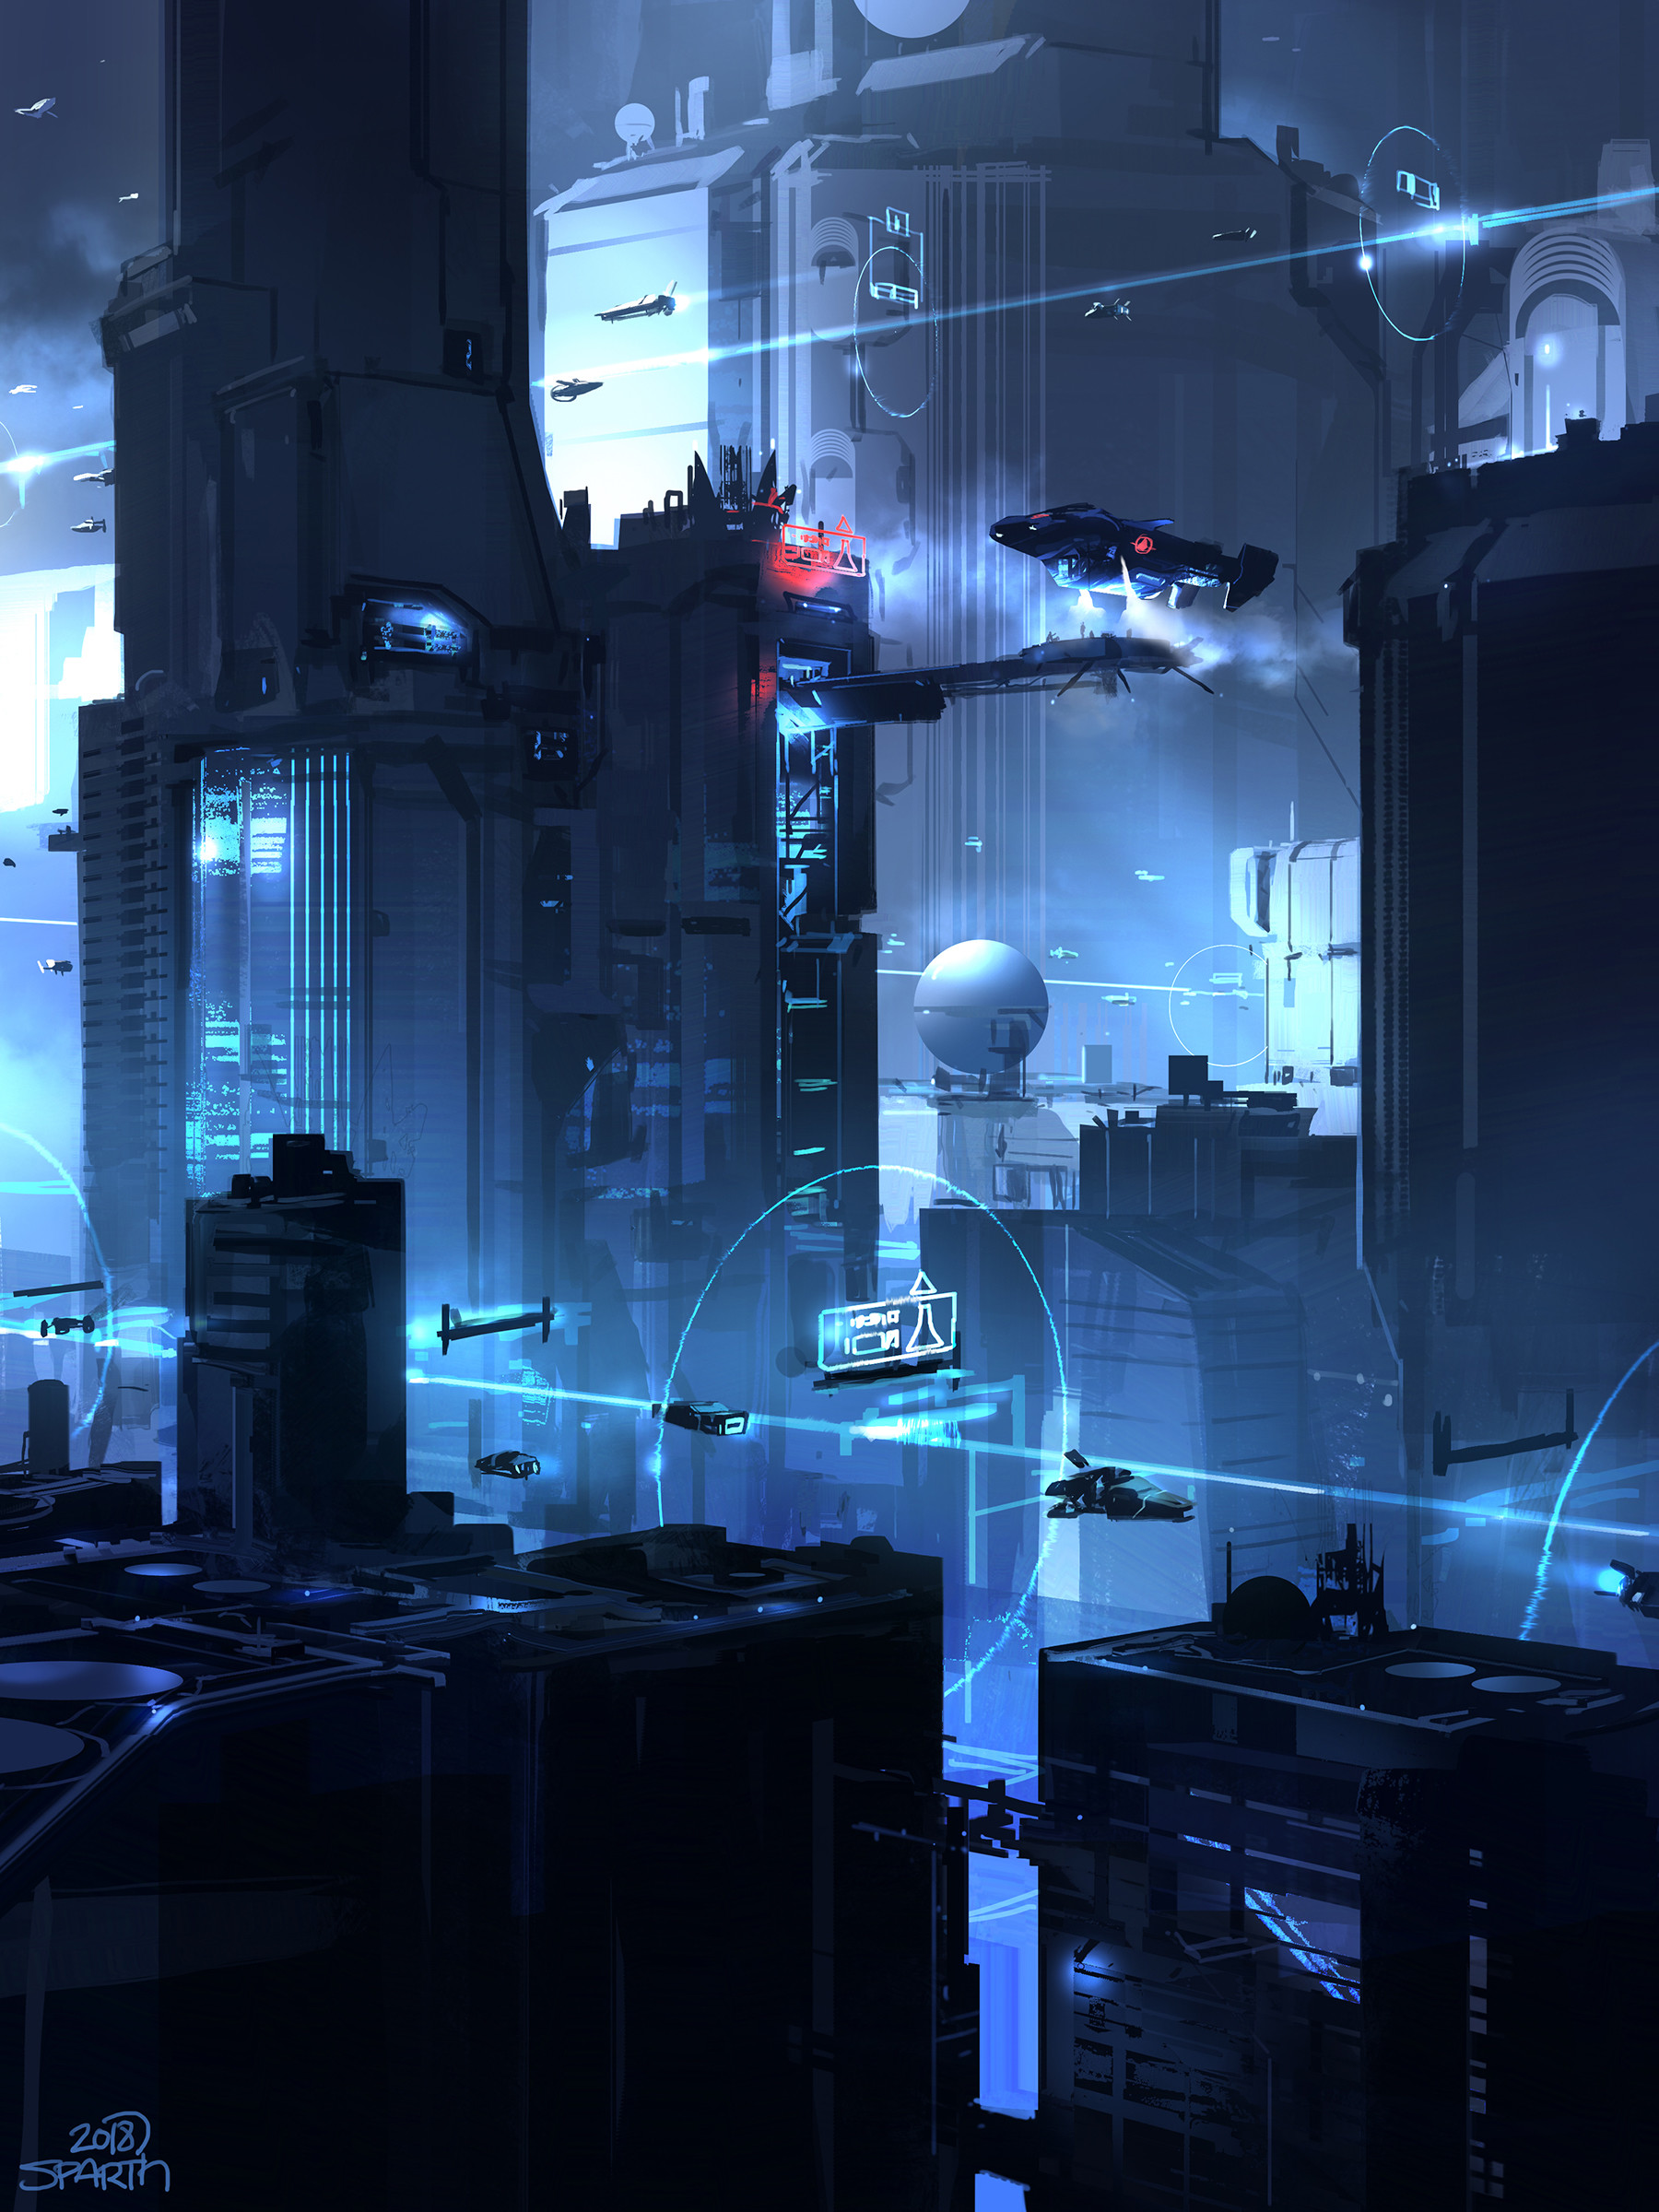 Sparth busy skies final small